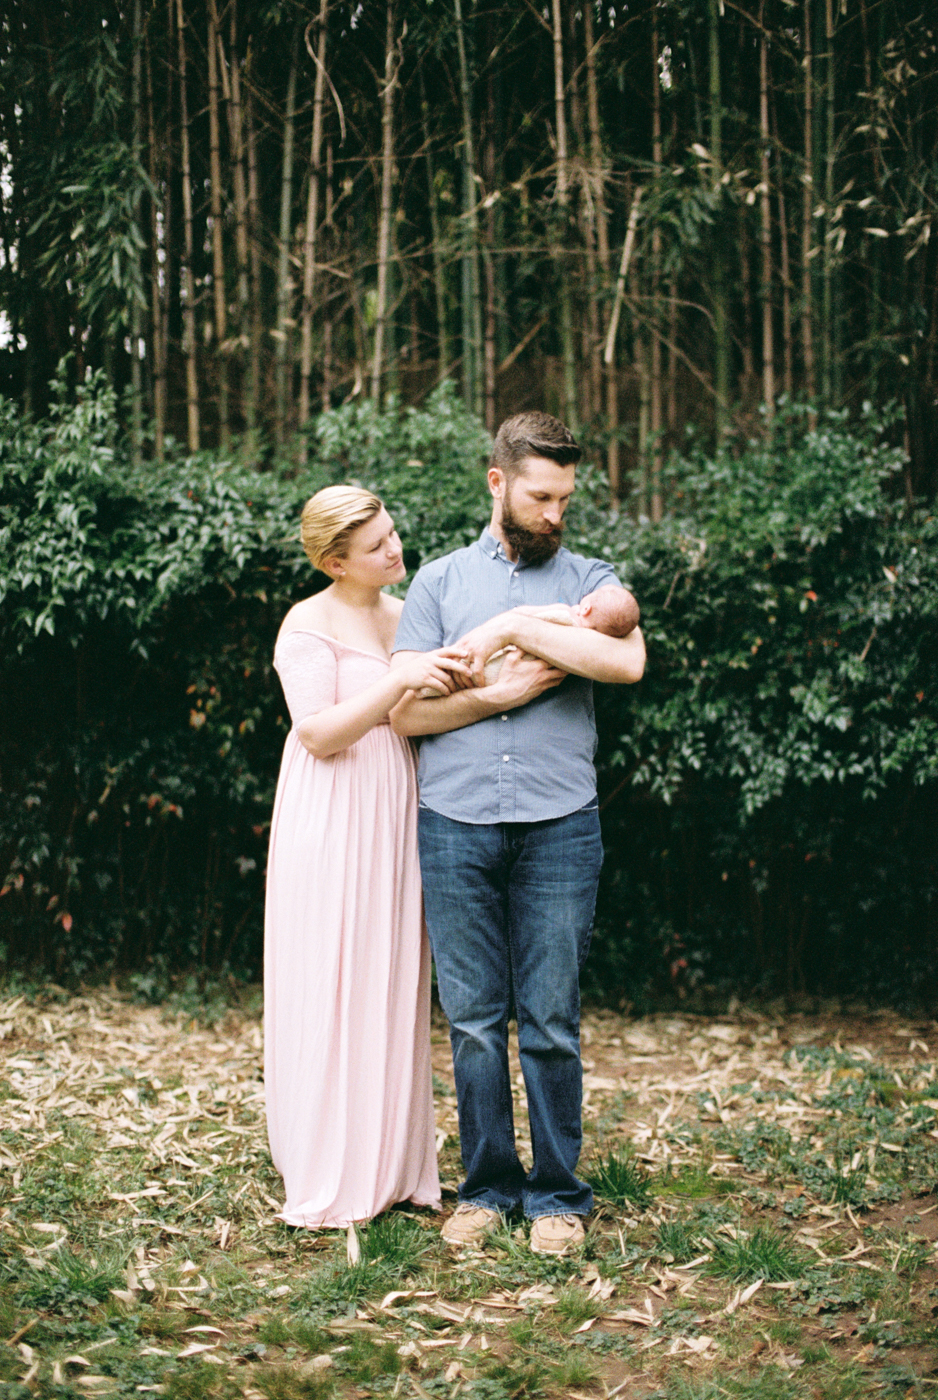 Four Corners Photography Atlanta Best Wedding Photographer Atlanta Best Newborn Photographer Atlanta Elopment Atlanta Maternity Photographer Wedding Photographer Southeast Fine Art Photography Atlanta Year in Review 2016-36.jpg